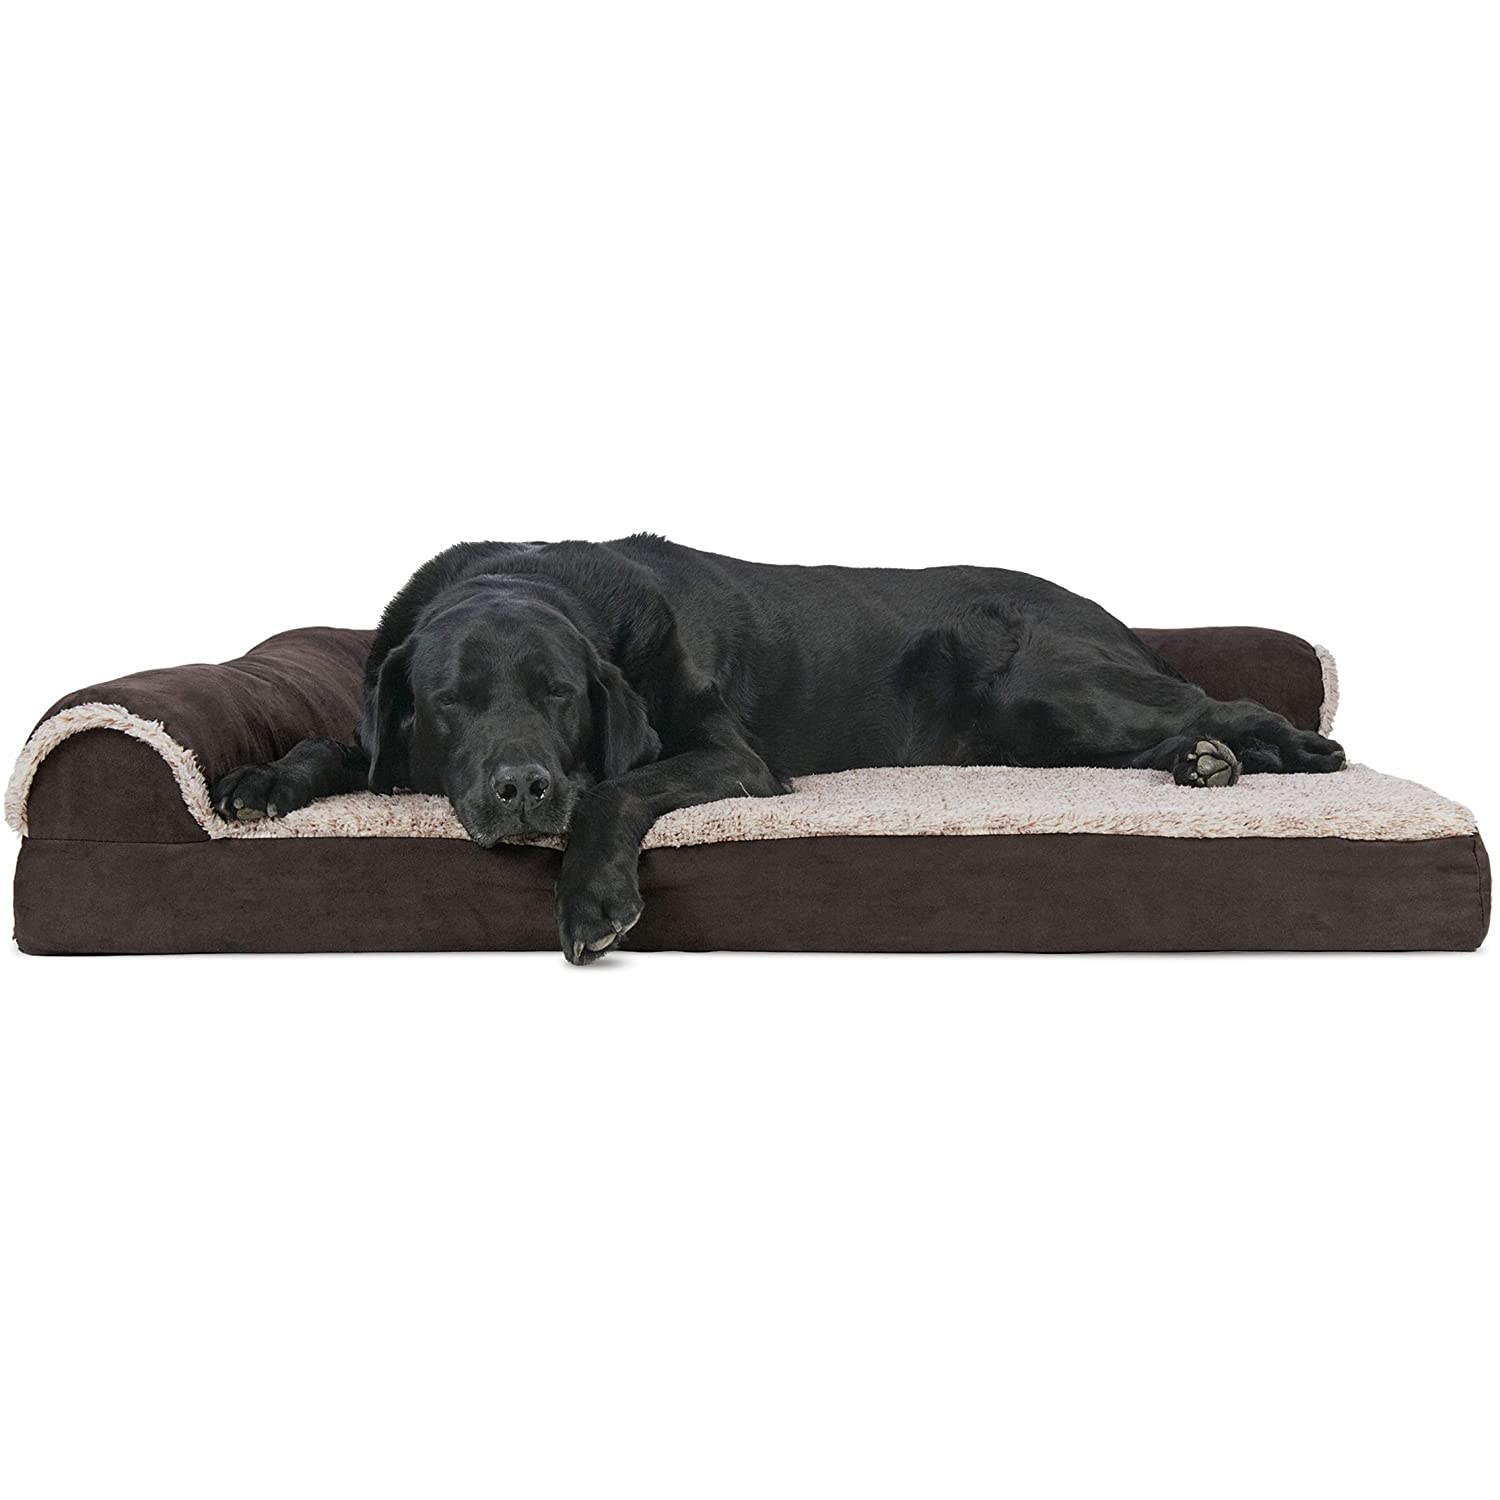 FurHaven Pet Dog Bed   Deluxe Orthopedic Faux Fur & Suede L-Shaped Chaise Couch Pet Bed for Dogs & Cats, Espresso, Jumbo